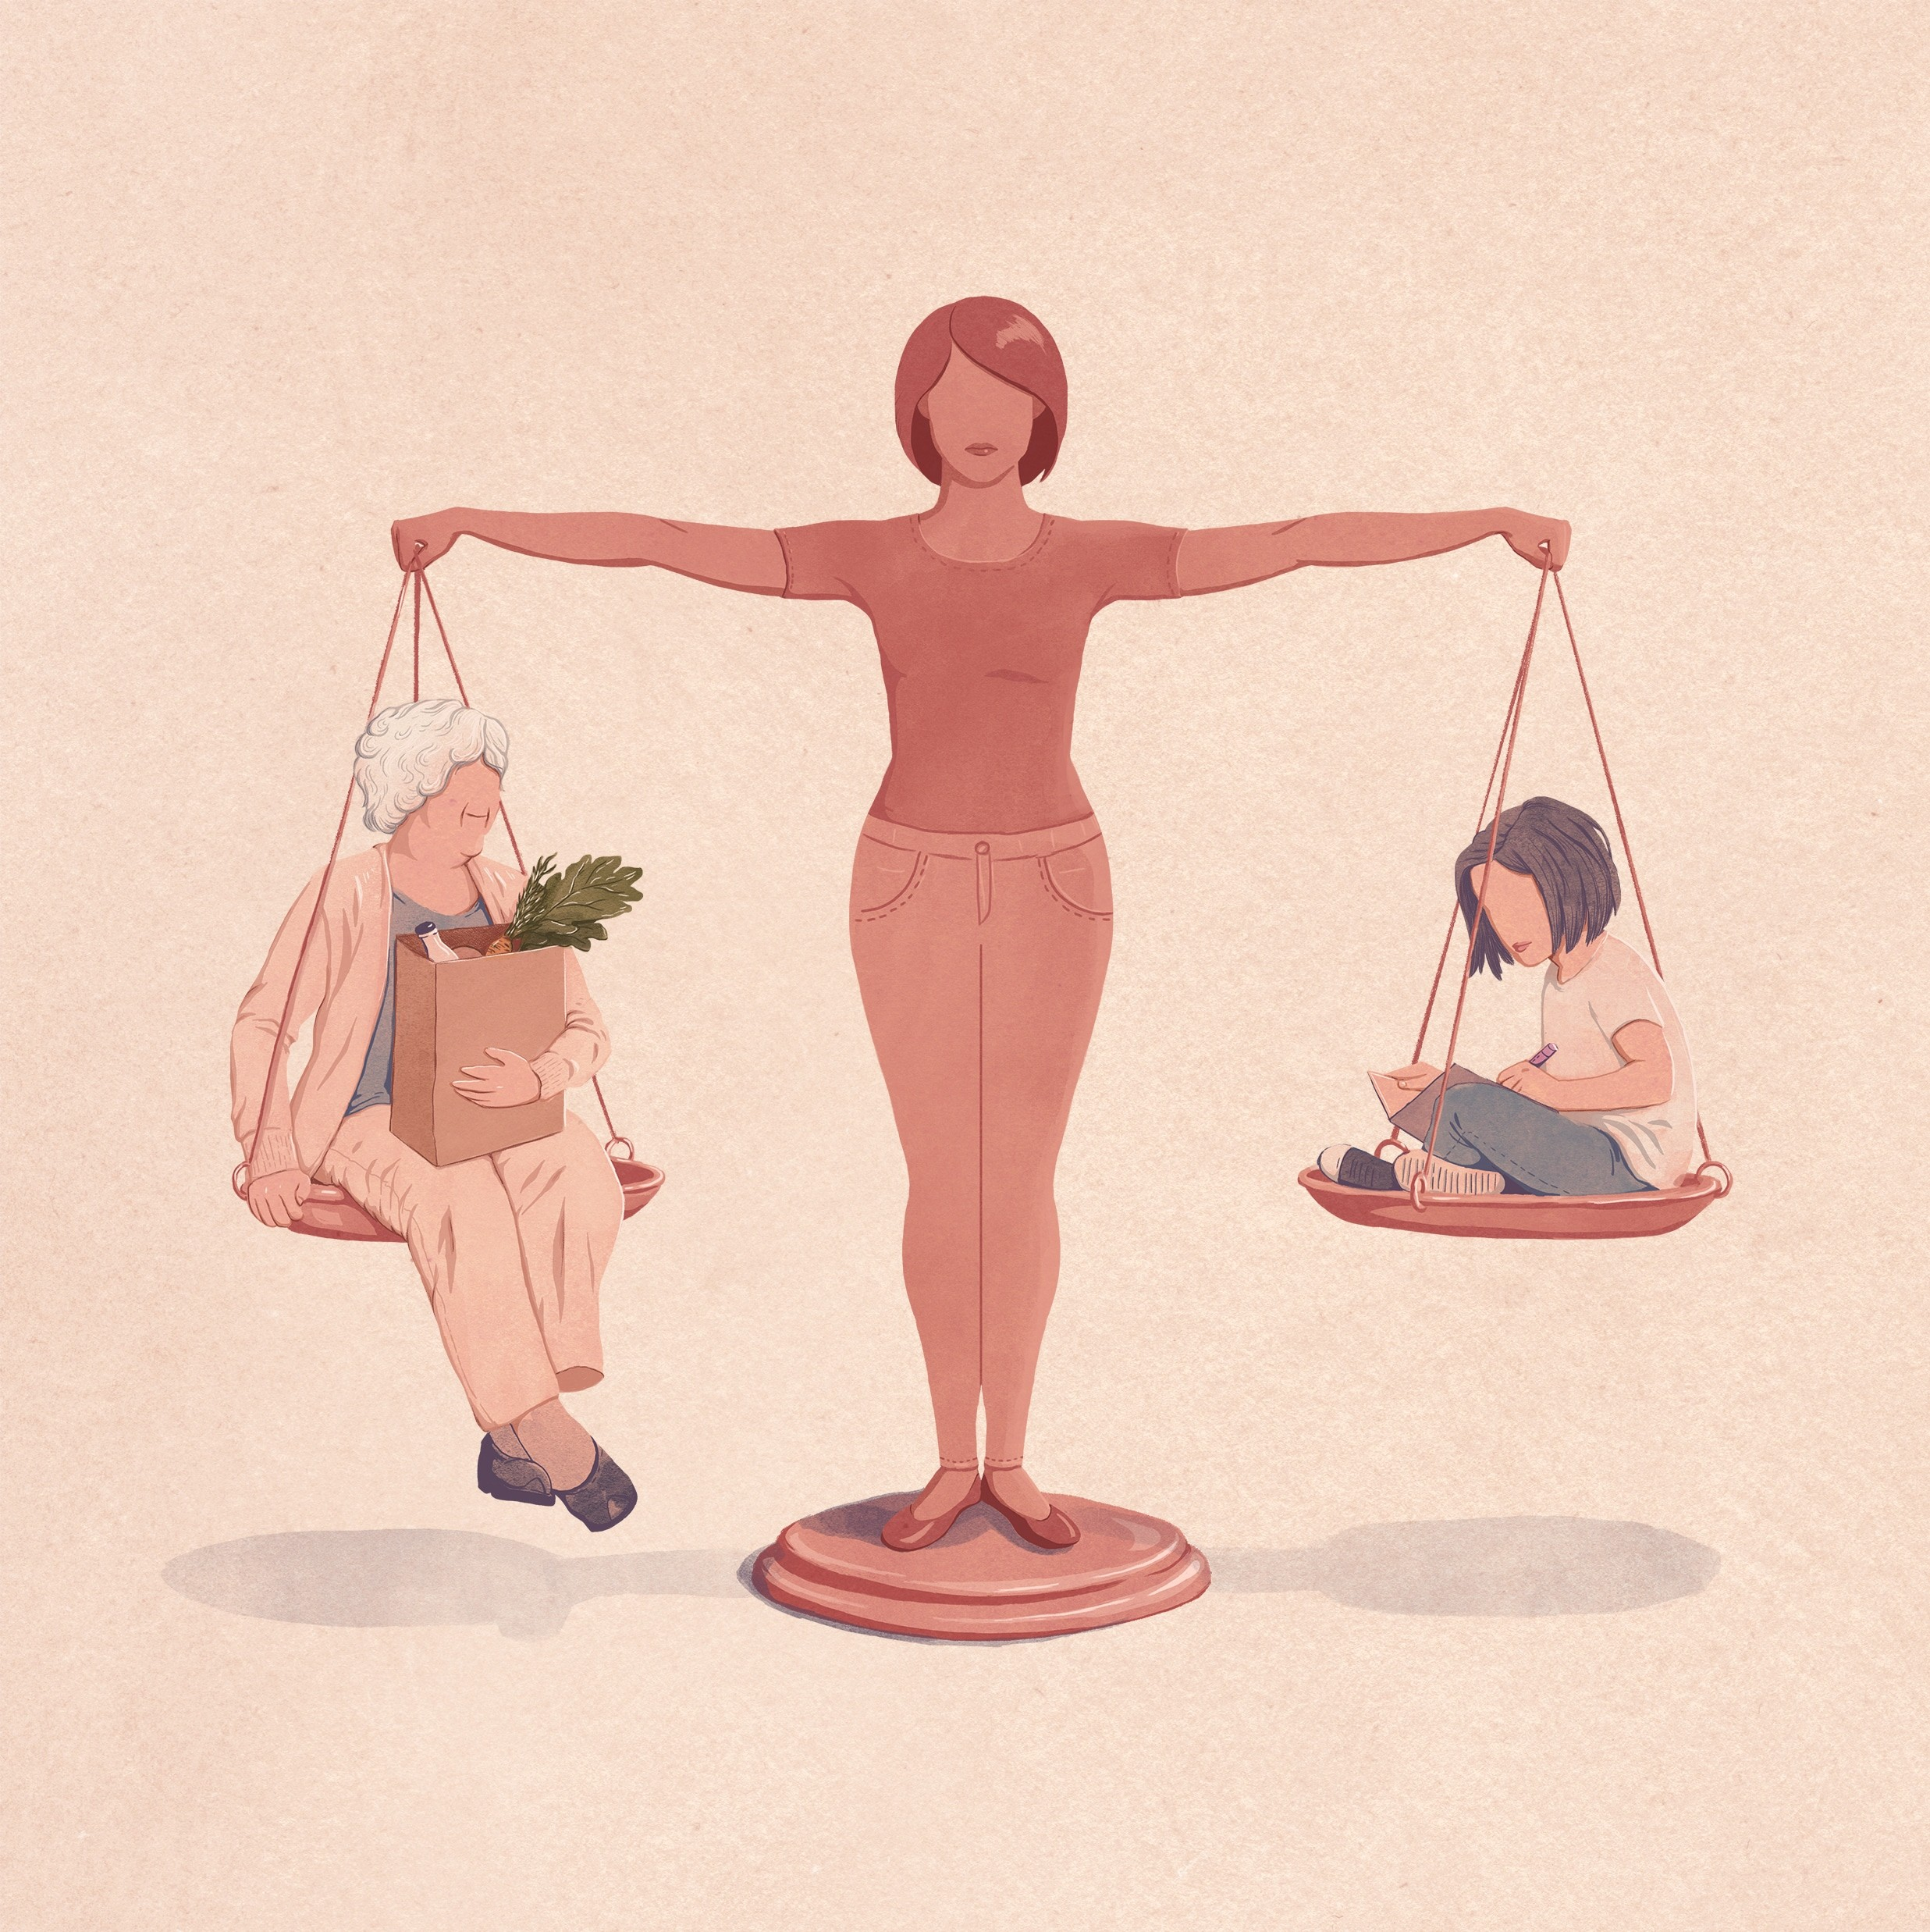 illustration of a woman balancing older and younger family member on each side